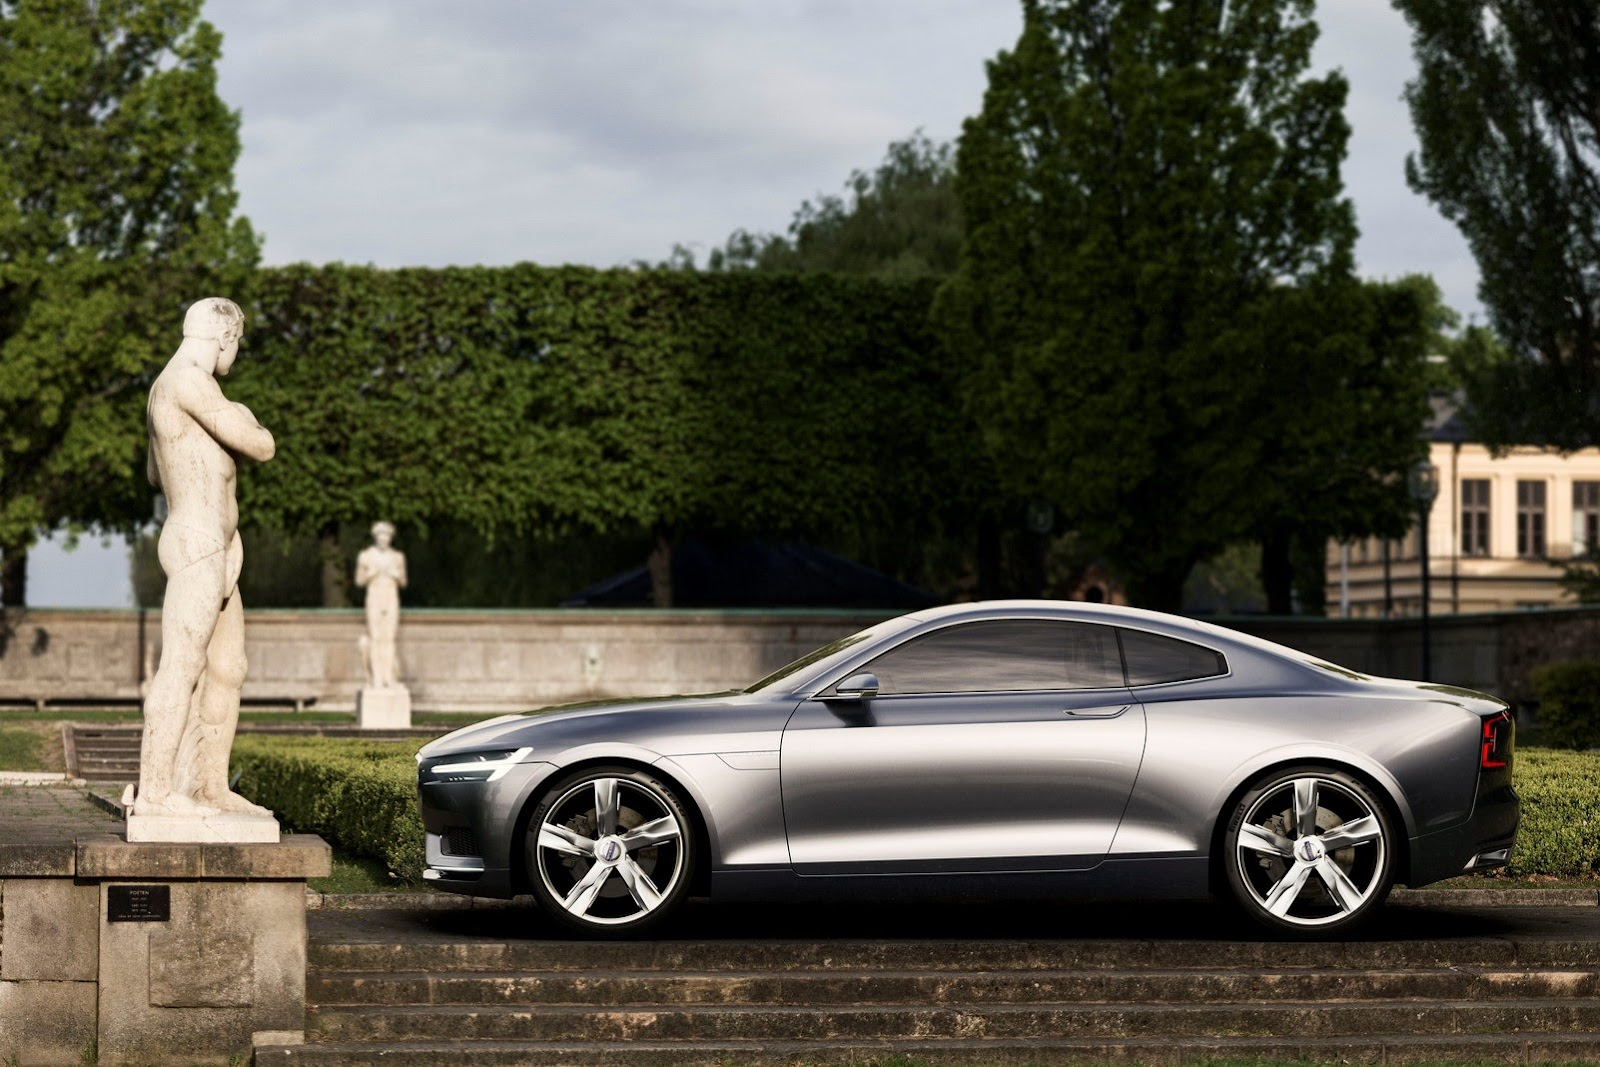 Volvo-Concept-Coupe-3%25255B2%25255D.jpg